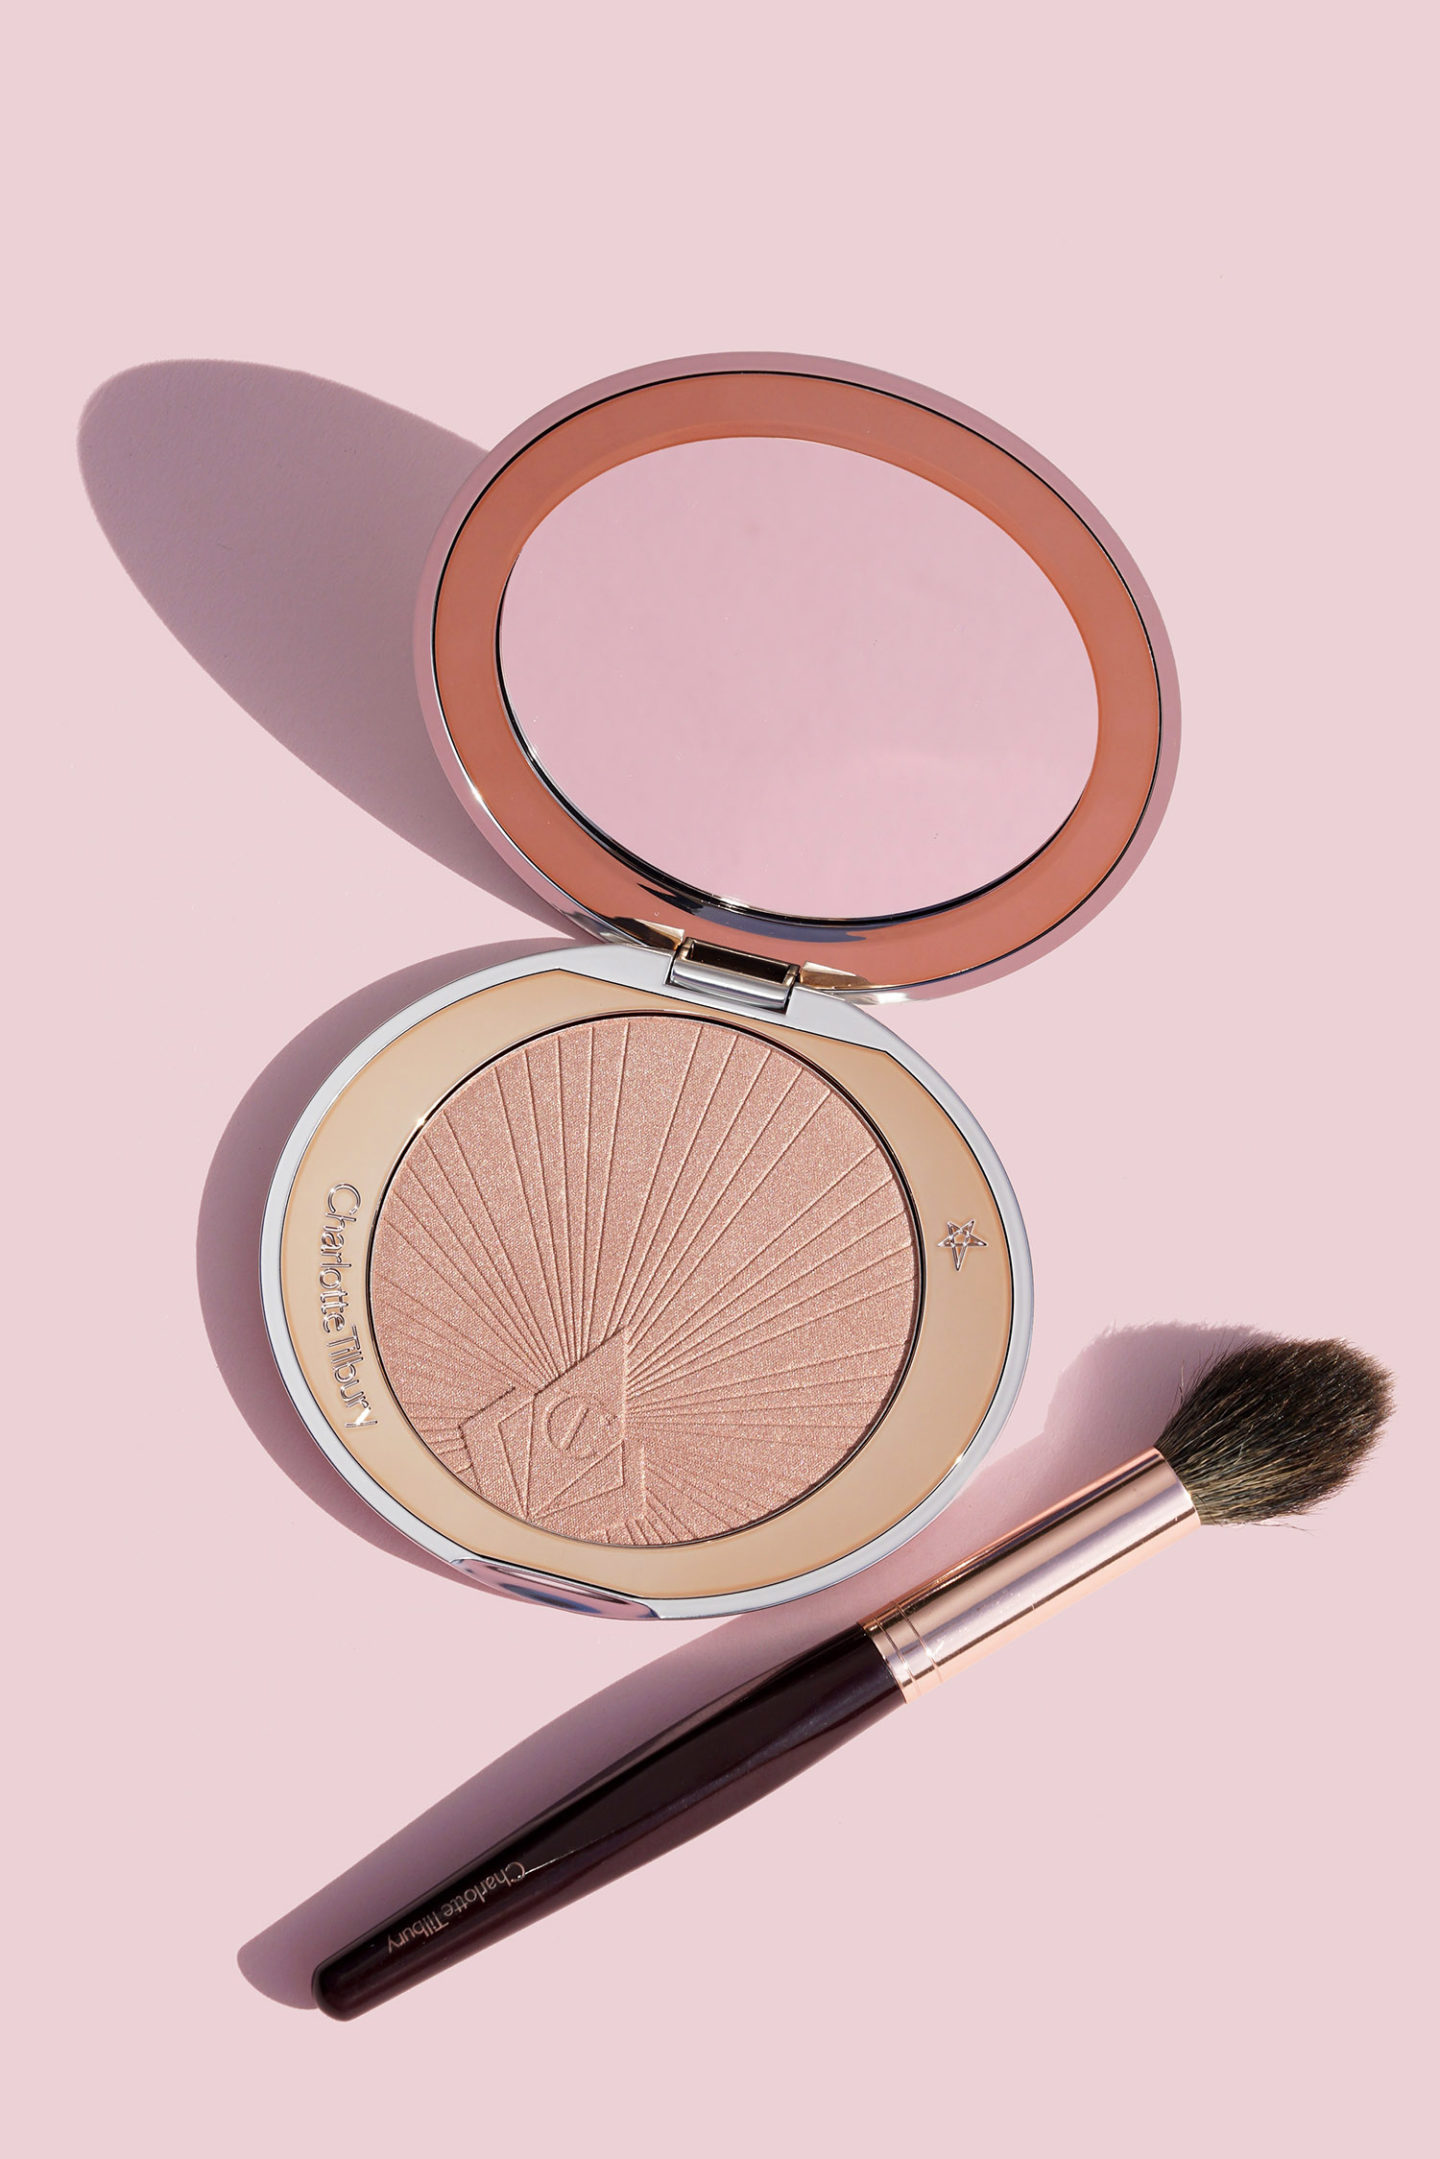 Charlotte Tilbury Hollywood Superstar Glow Highlighter review | The Beauty Look Book